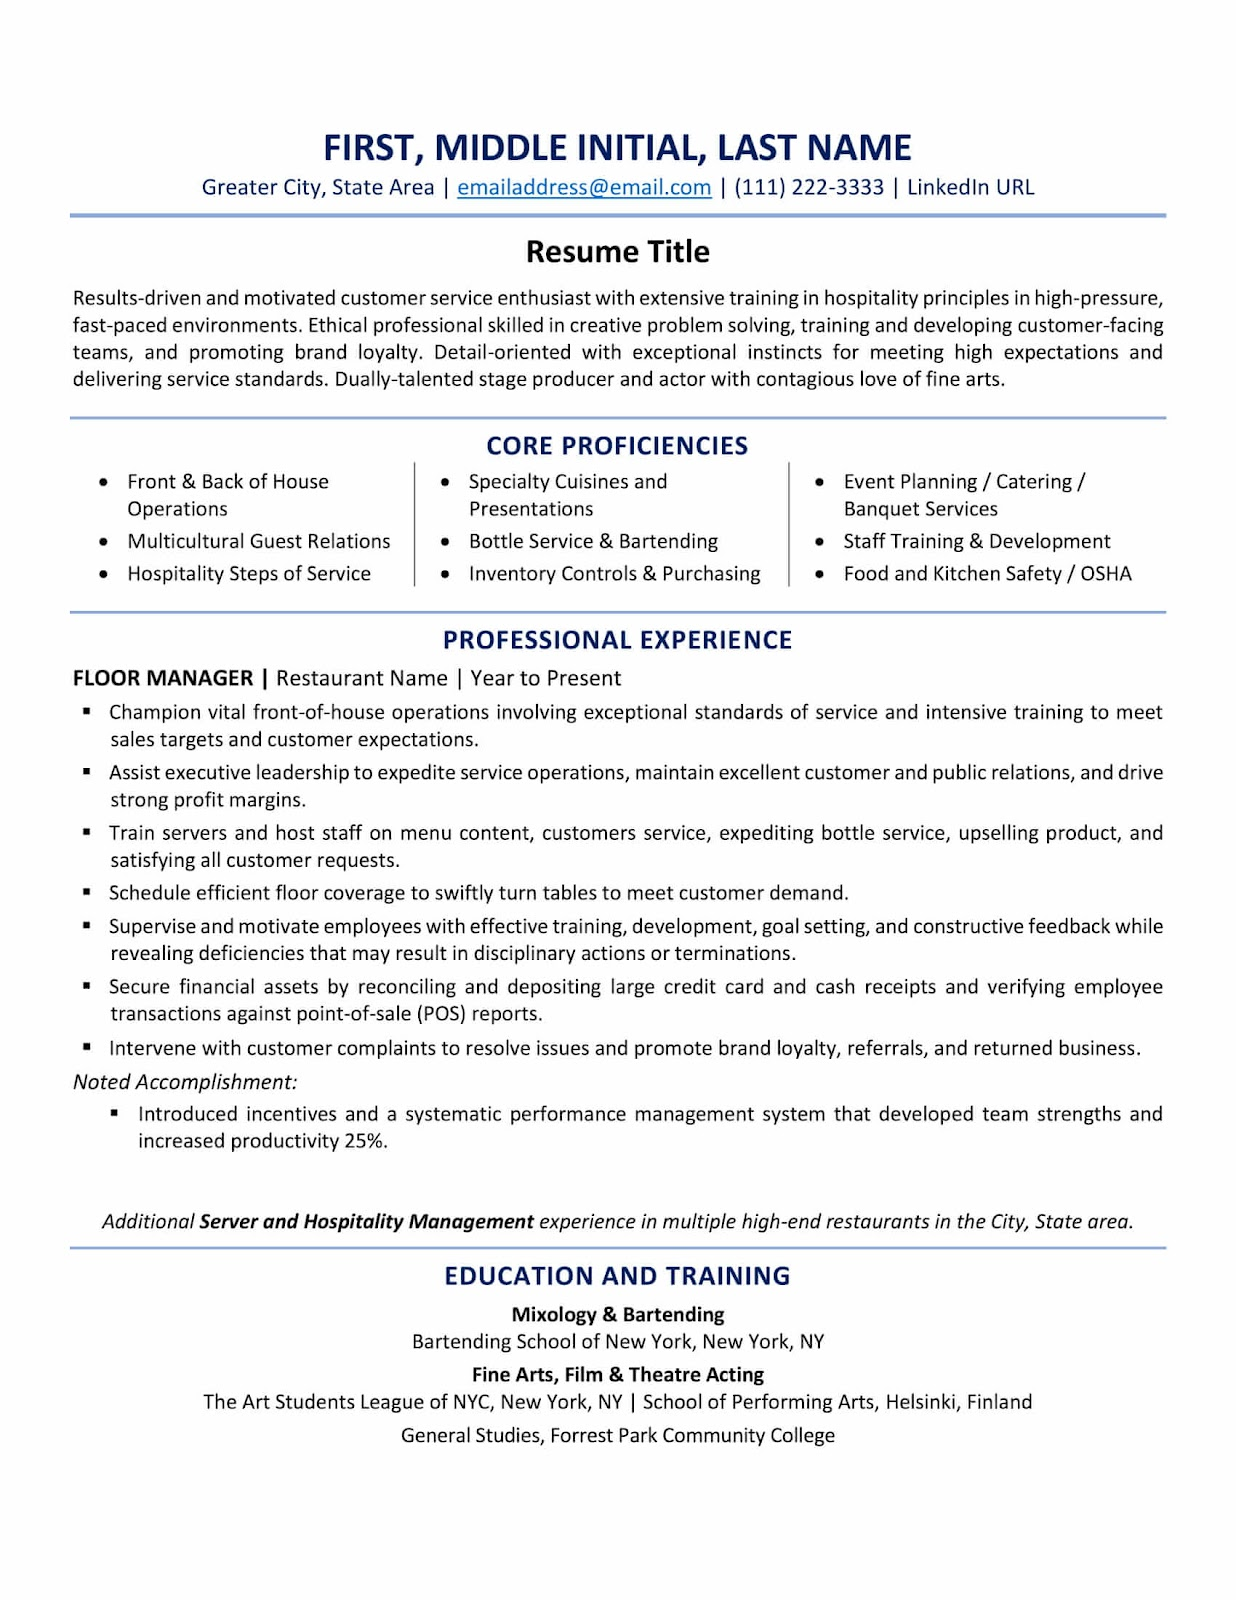 Example of a US resume format